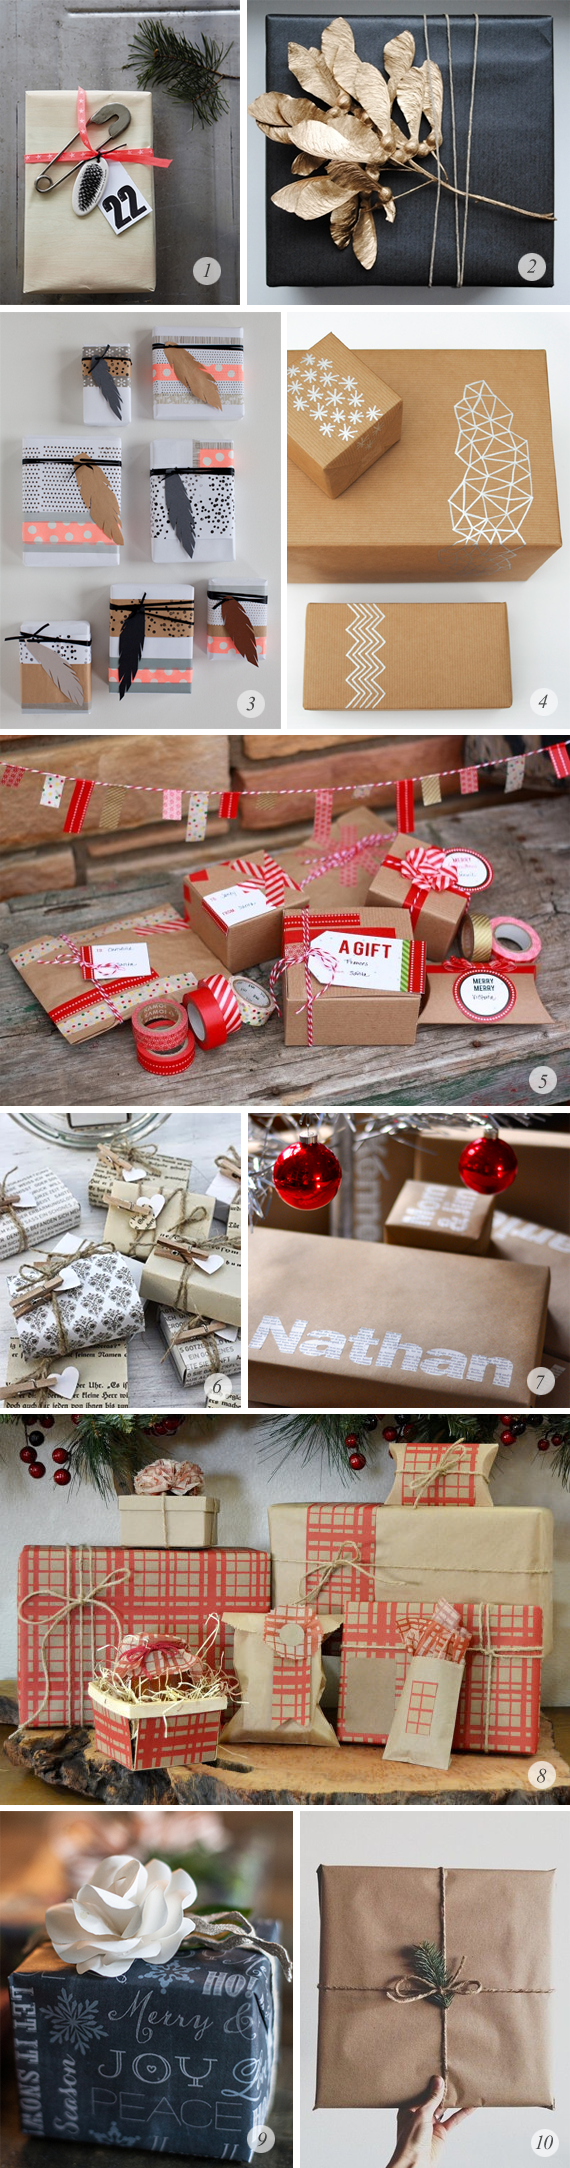 10 Great Holiday Gift Wrapping Ideas // Bubby and Bean